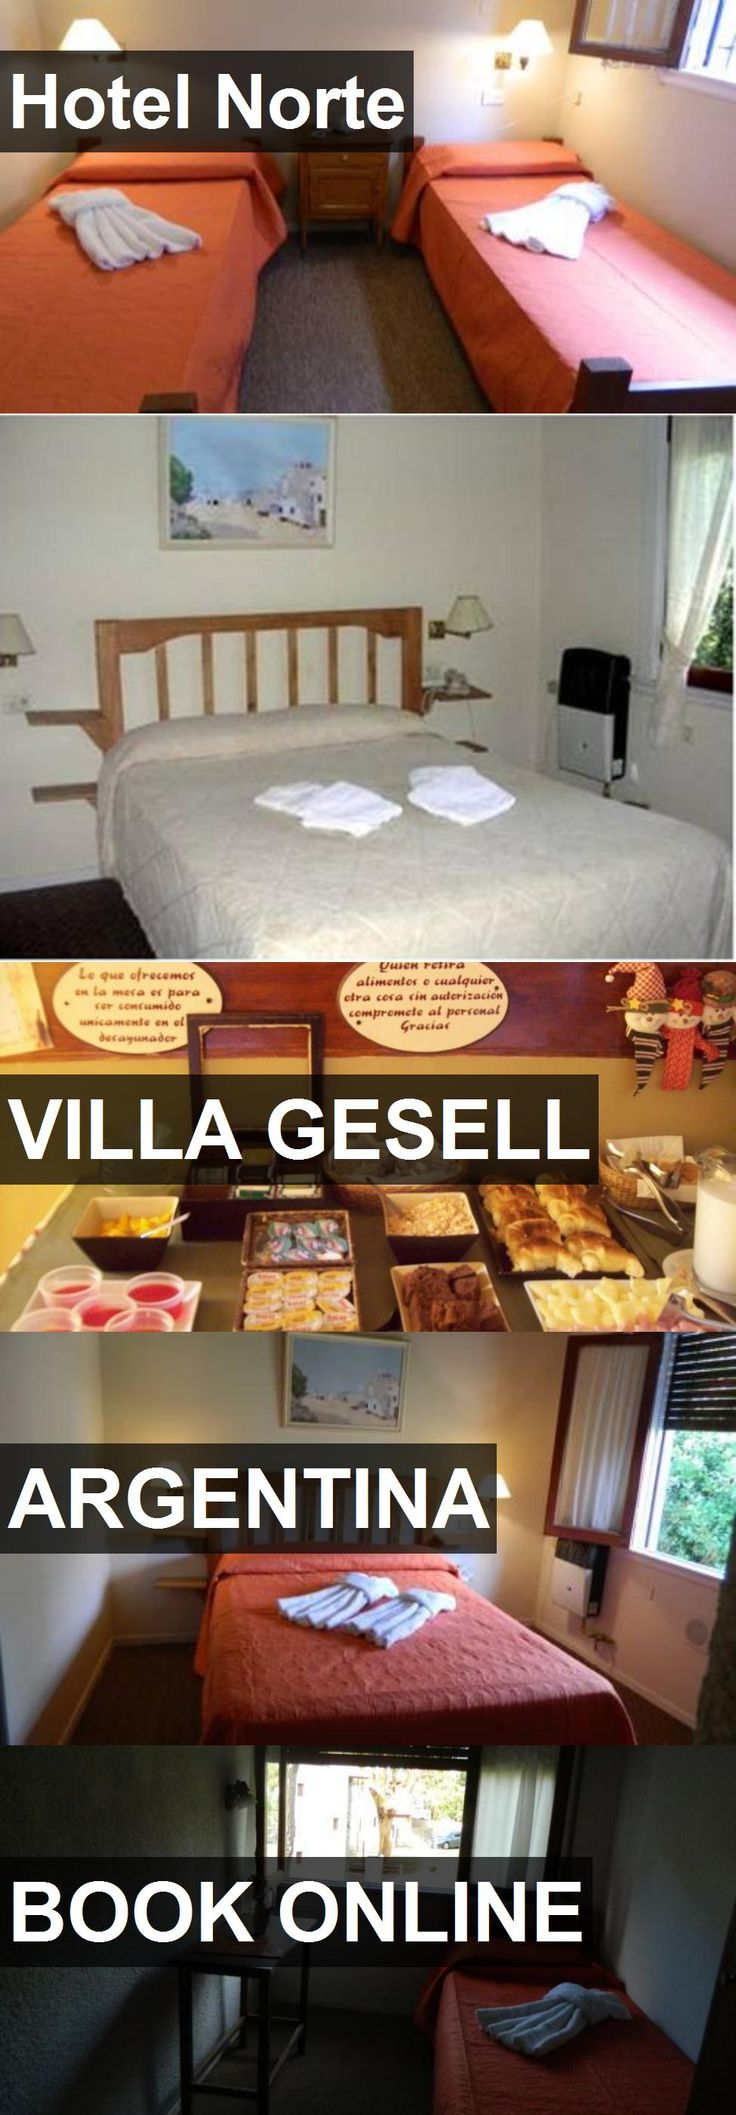 Hotel Hotel Norte in Villa Gesell, Argentina. For more information, photos, reviews and best prices please follow the link. #Argentina #VillaGesell #HotelNorte #hotel #travel #vacation